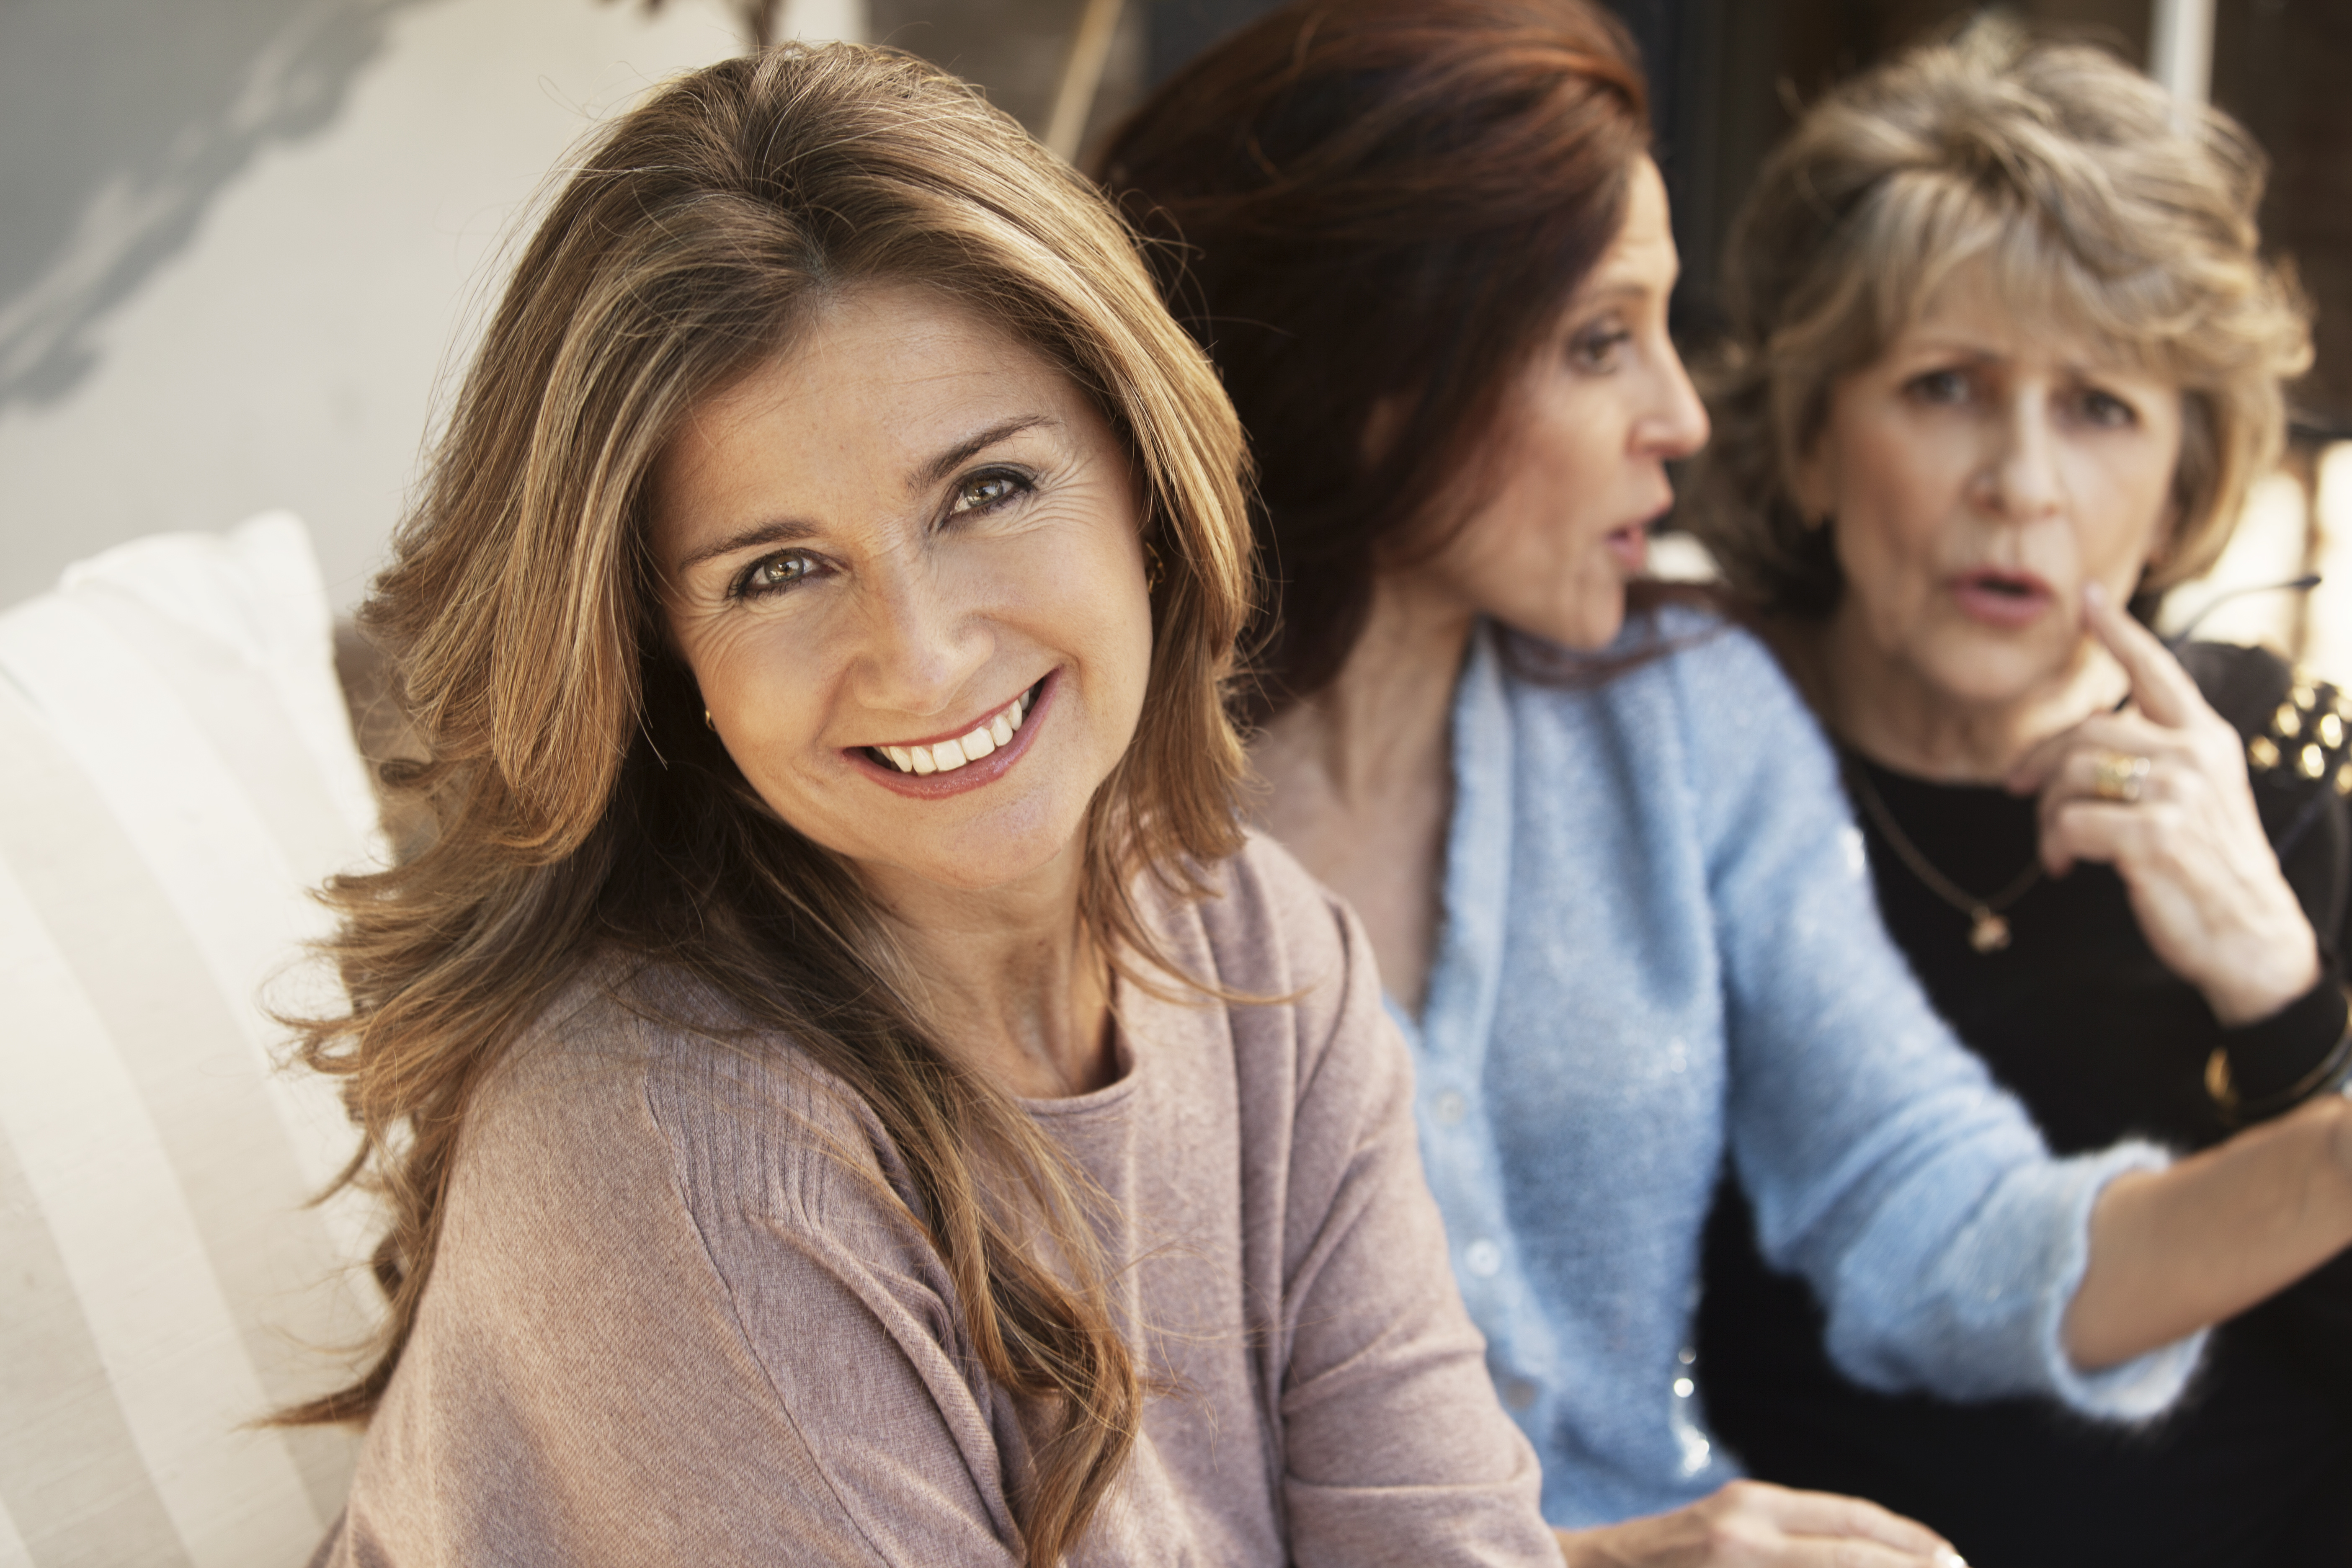 Menopause and Perimenopause: An Integrative and Preventive Medicine Approach